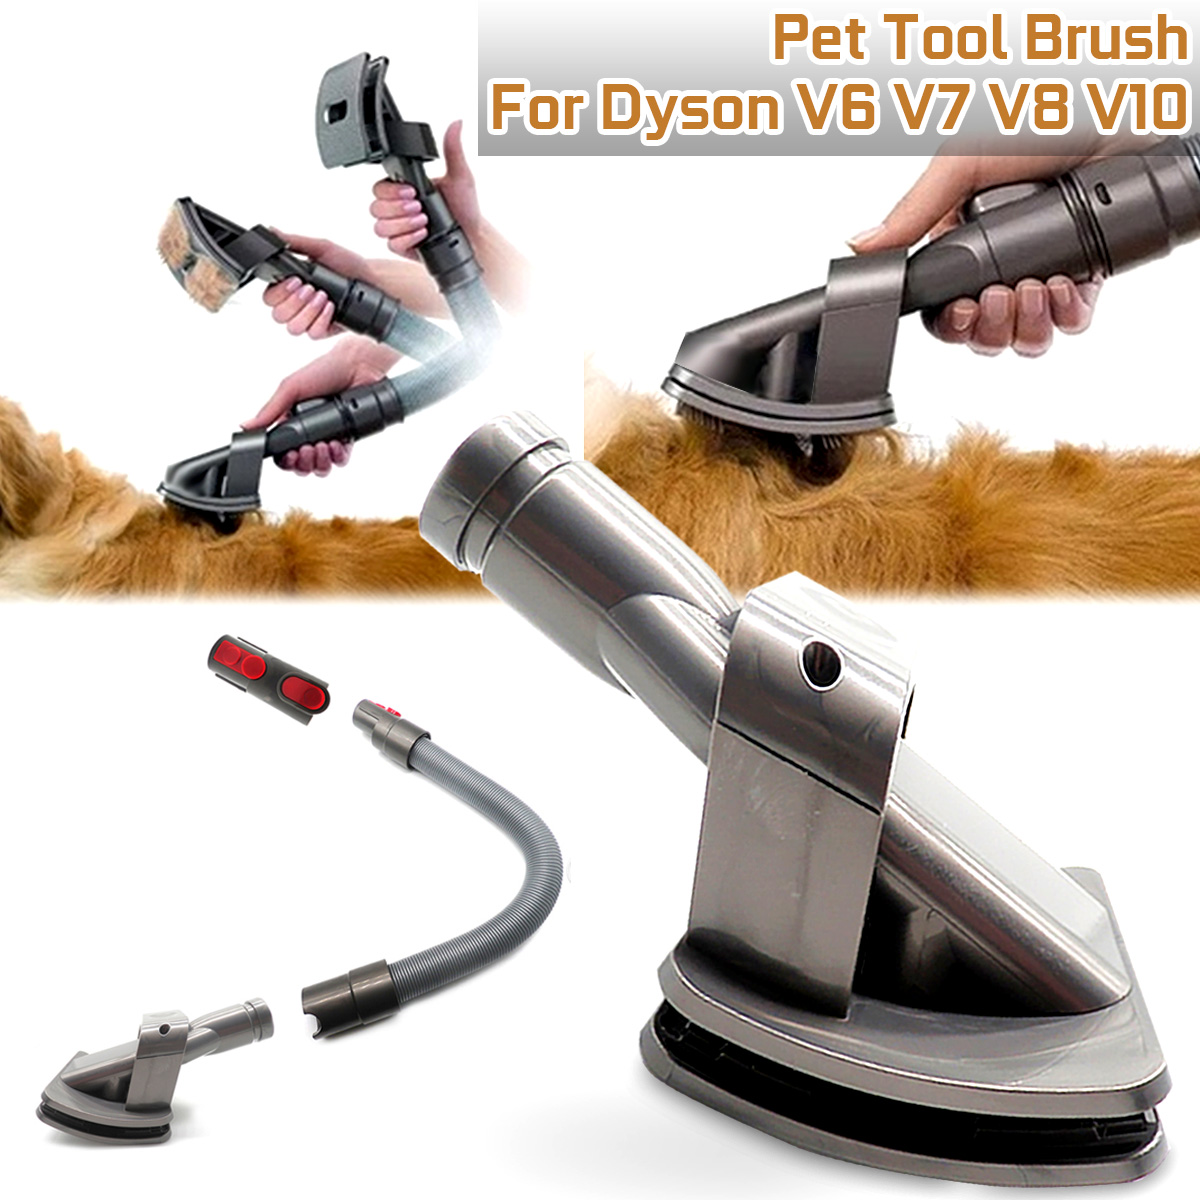 Dog Pet Animal Groom Tool Vacuum Cleaner Brush Connector Plug Adapter For Dyson Vacuum V6 V7 V8 V10 Vacuum Cleaner Accessories